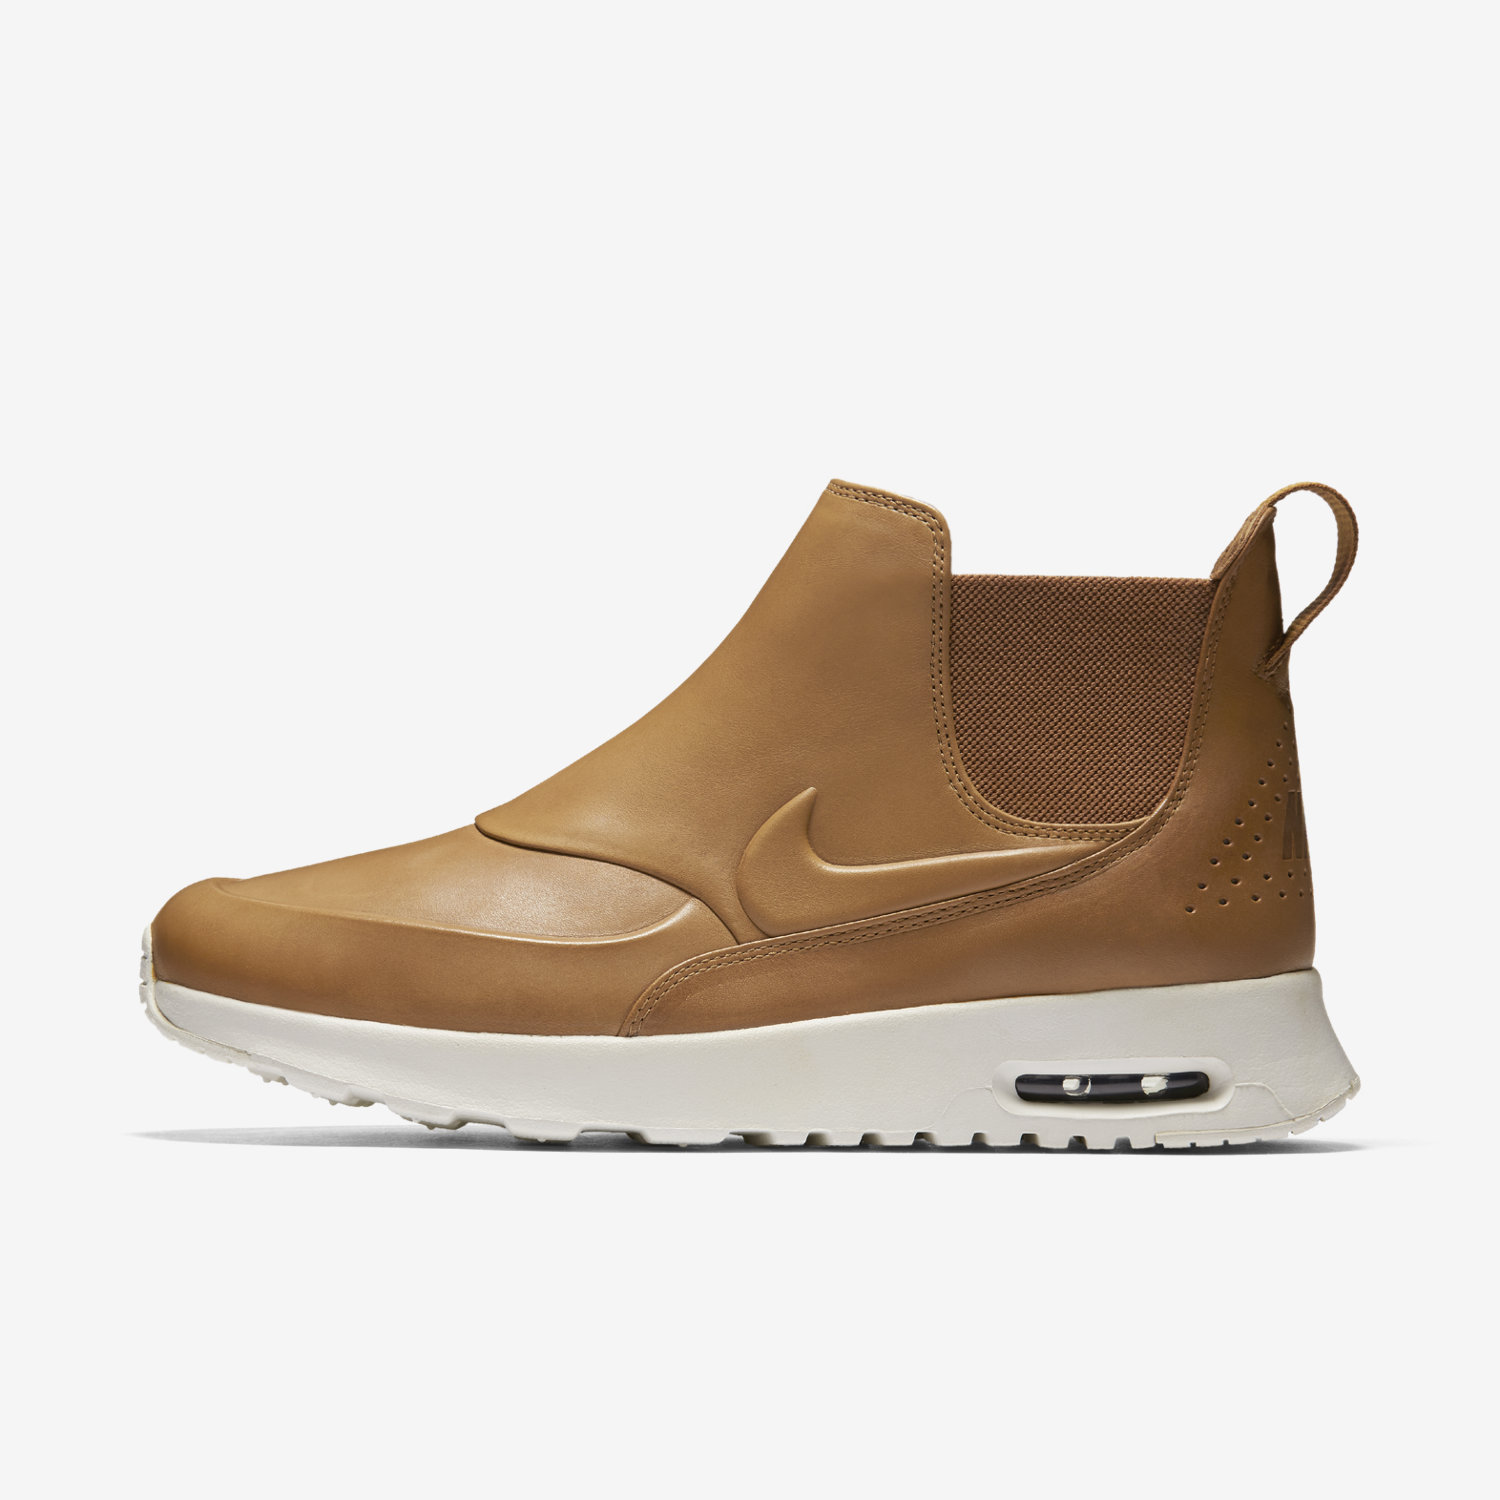 Nike Air Max Damen Beige